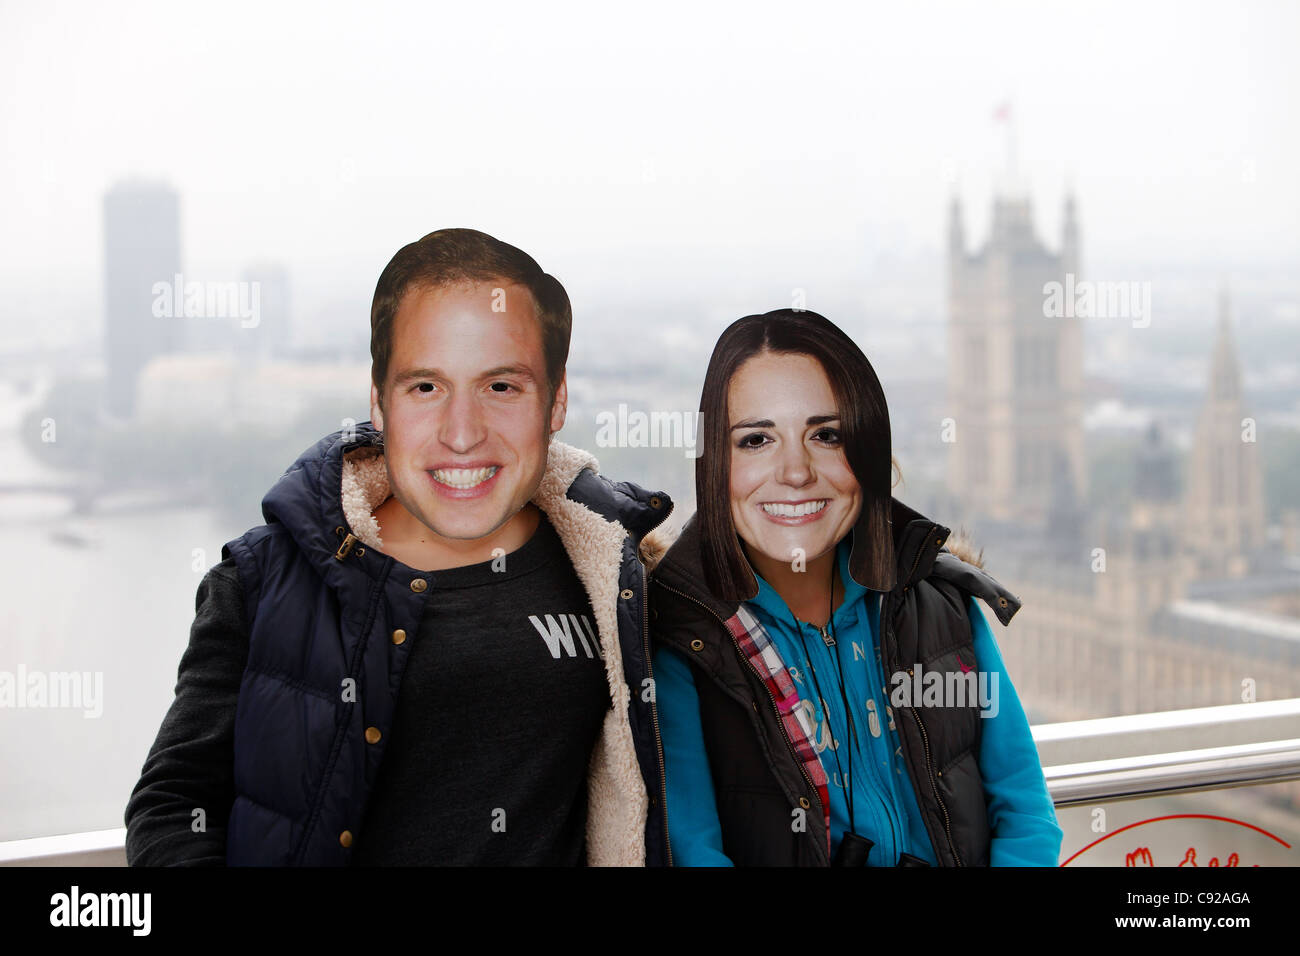 'Prince William and Kate Middleton' masked lookalikes in the London Eye, during the start of the Royal Wedding London, Stock Photo